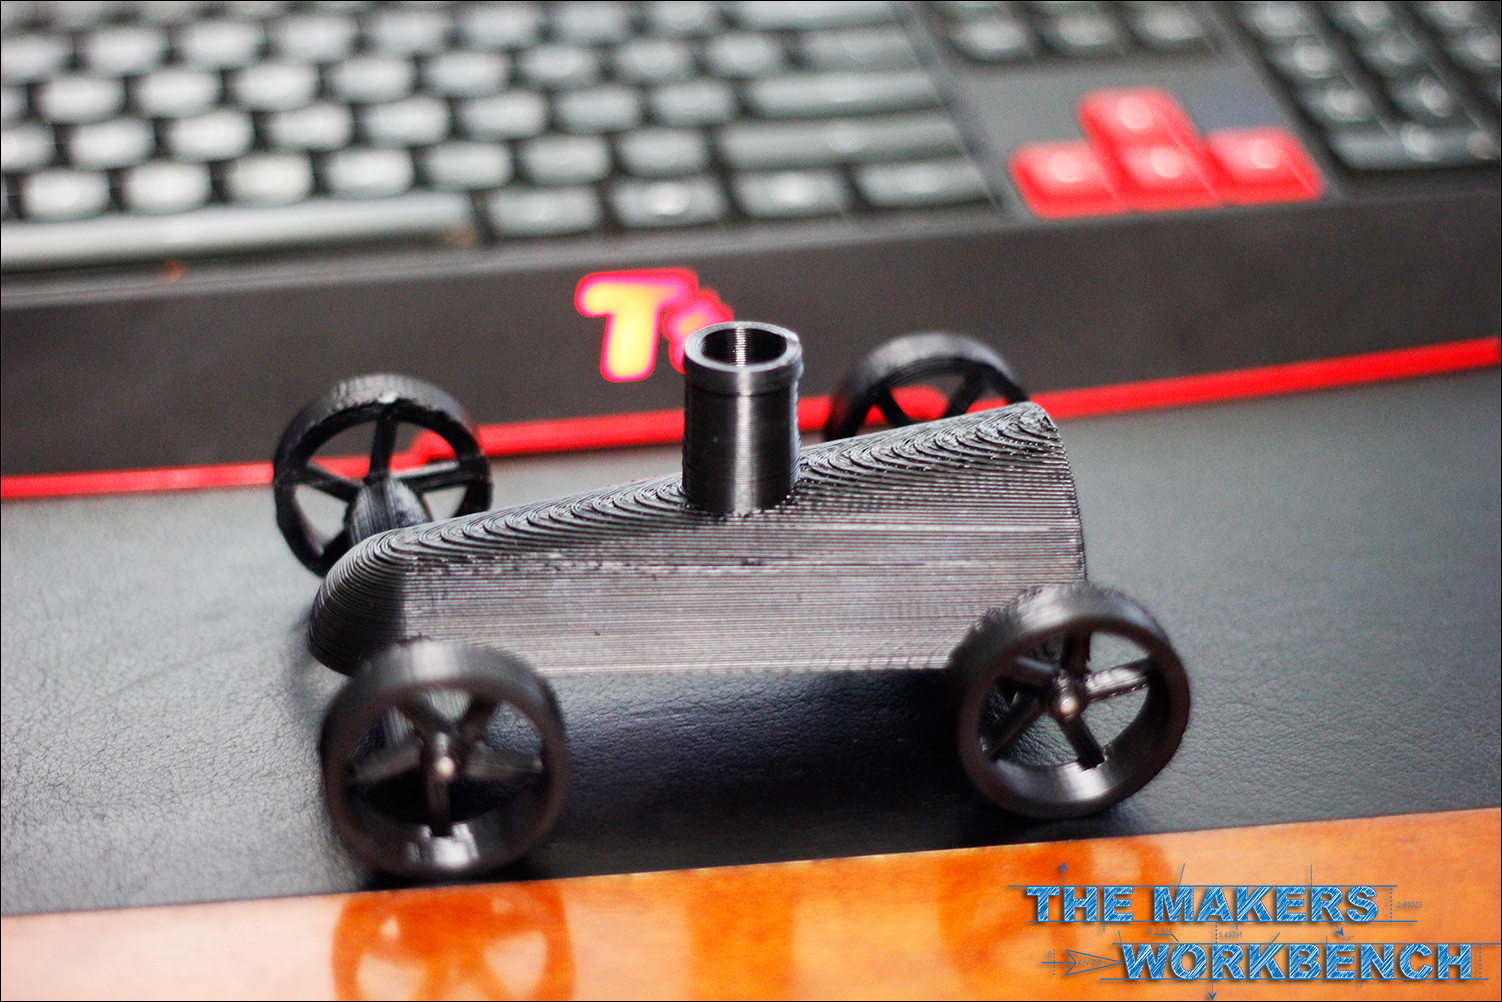 Balloon powered jet car with printable wheels the makers workbench